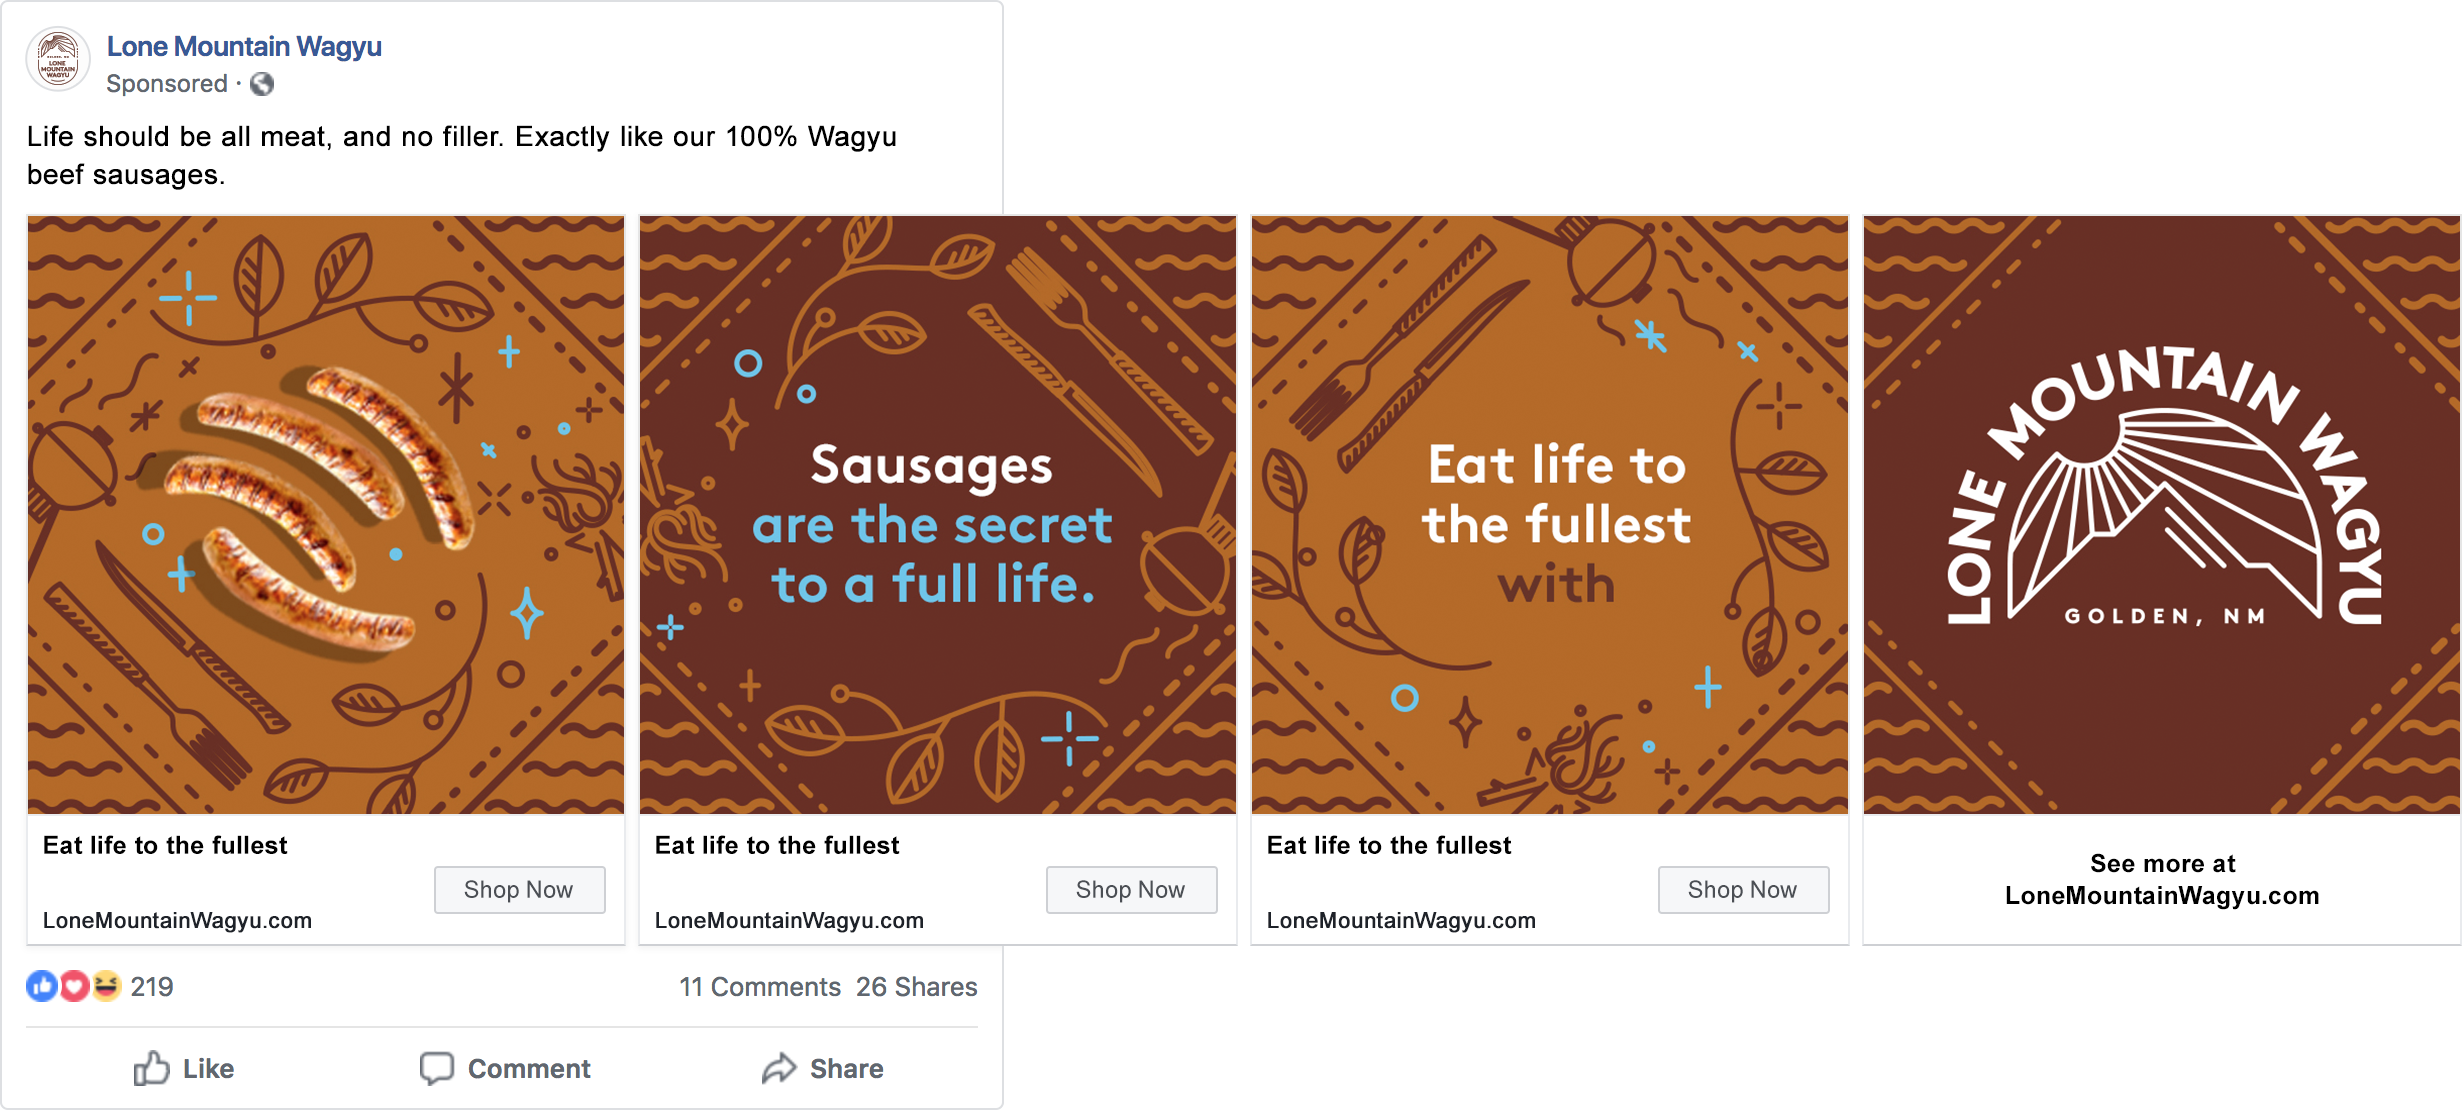 Eat Life to the Fullest branding social ad for Lone Mountain Wagyu by Tom Morhous and Remo+Oob, Ltd.